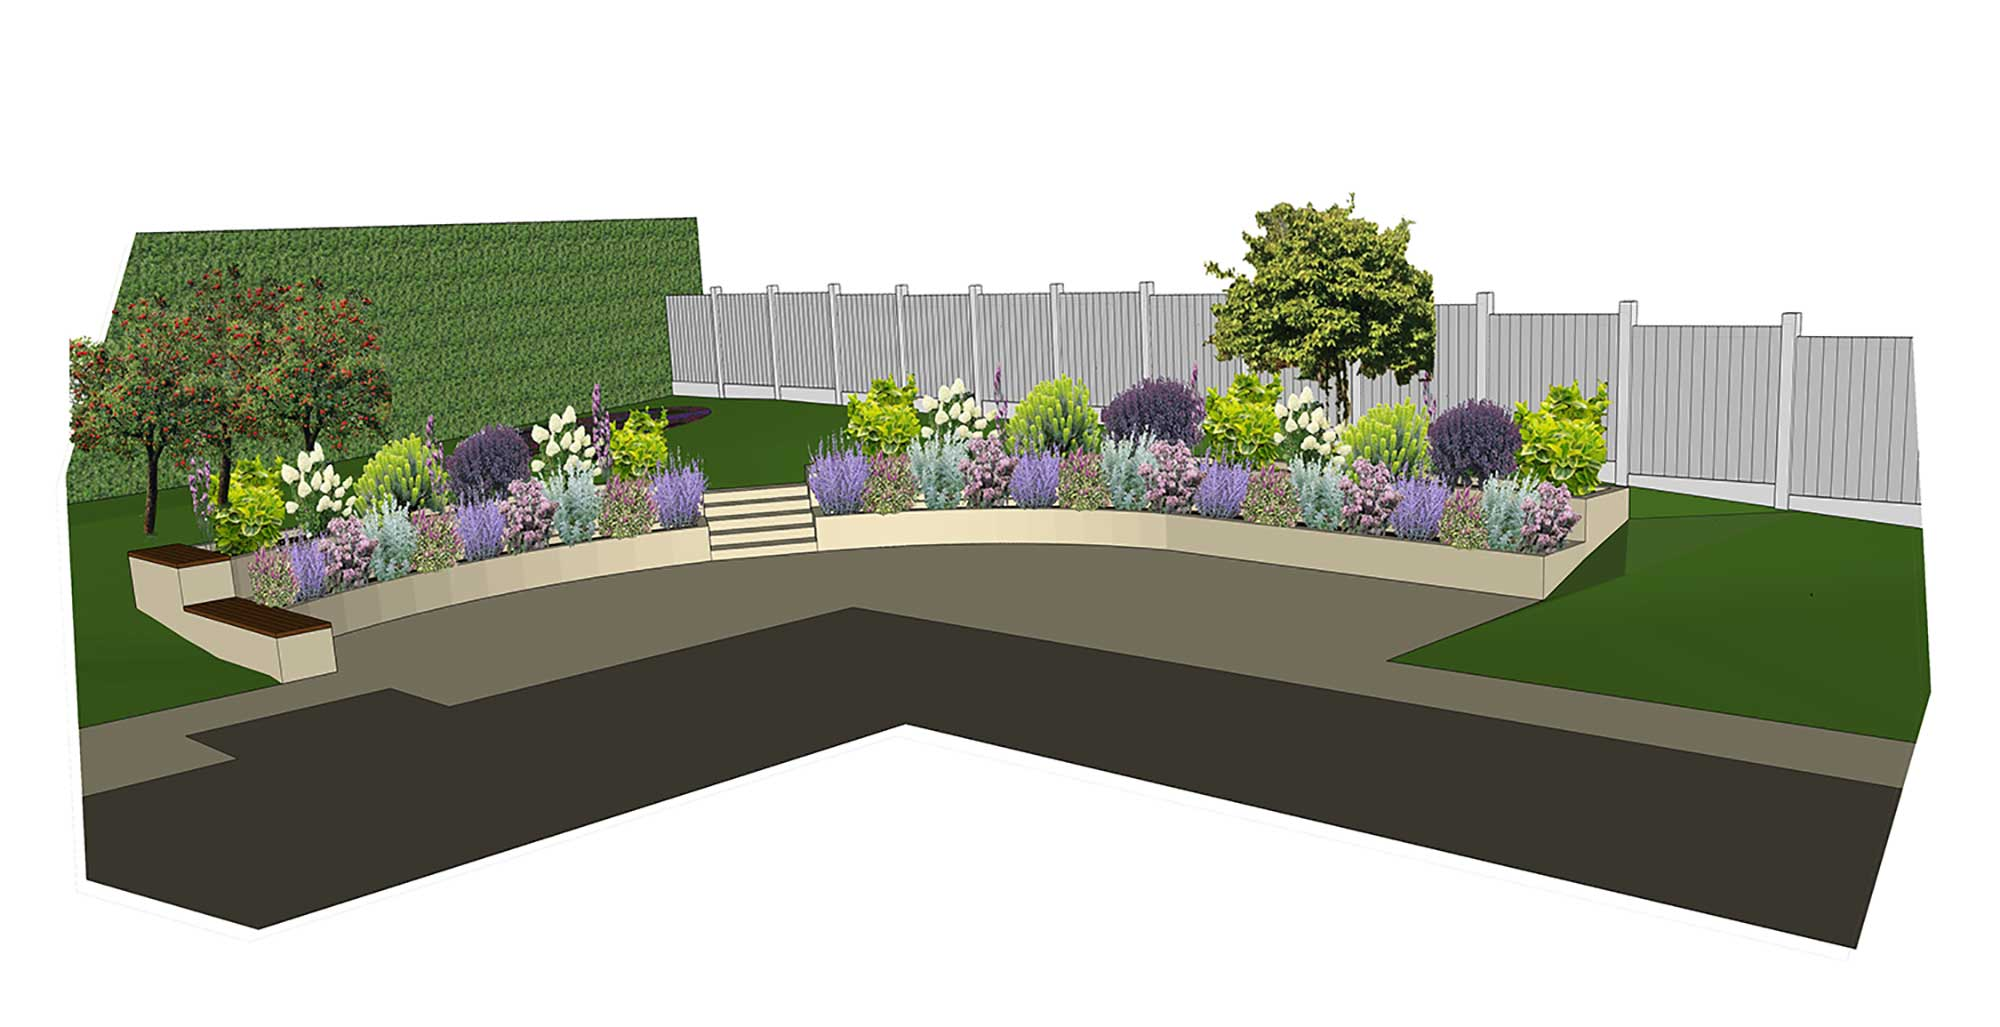 rear garden design visualisation garden design layout